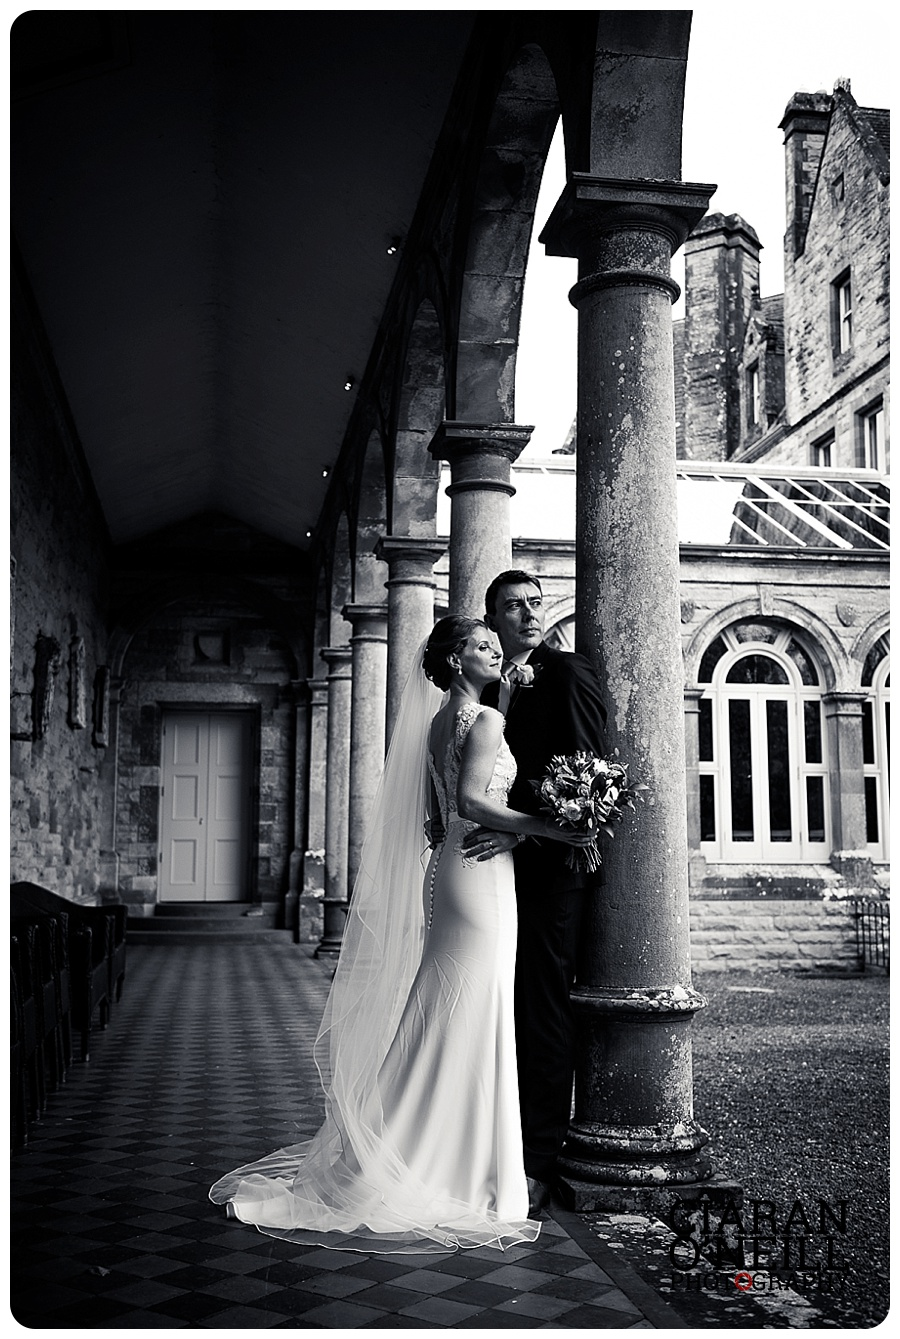 Vanessa & Russell's wedding at Castle Leslie by Ciaran O'Neill Photography